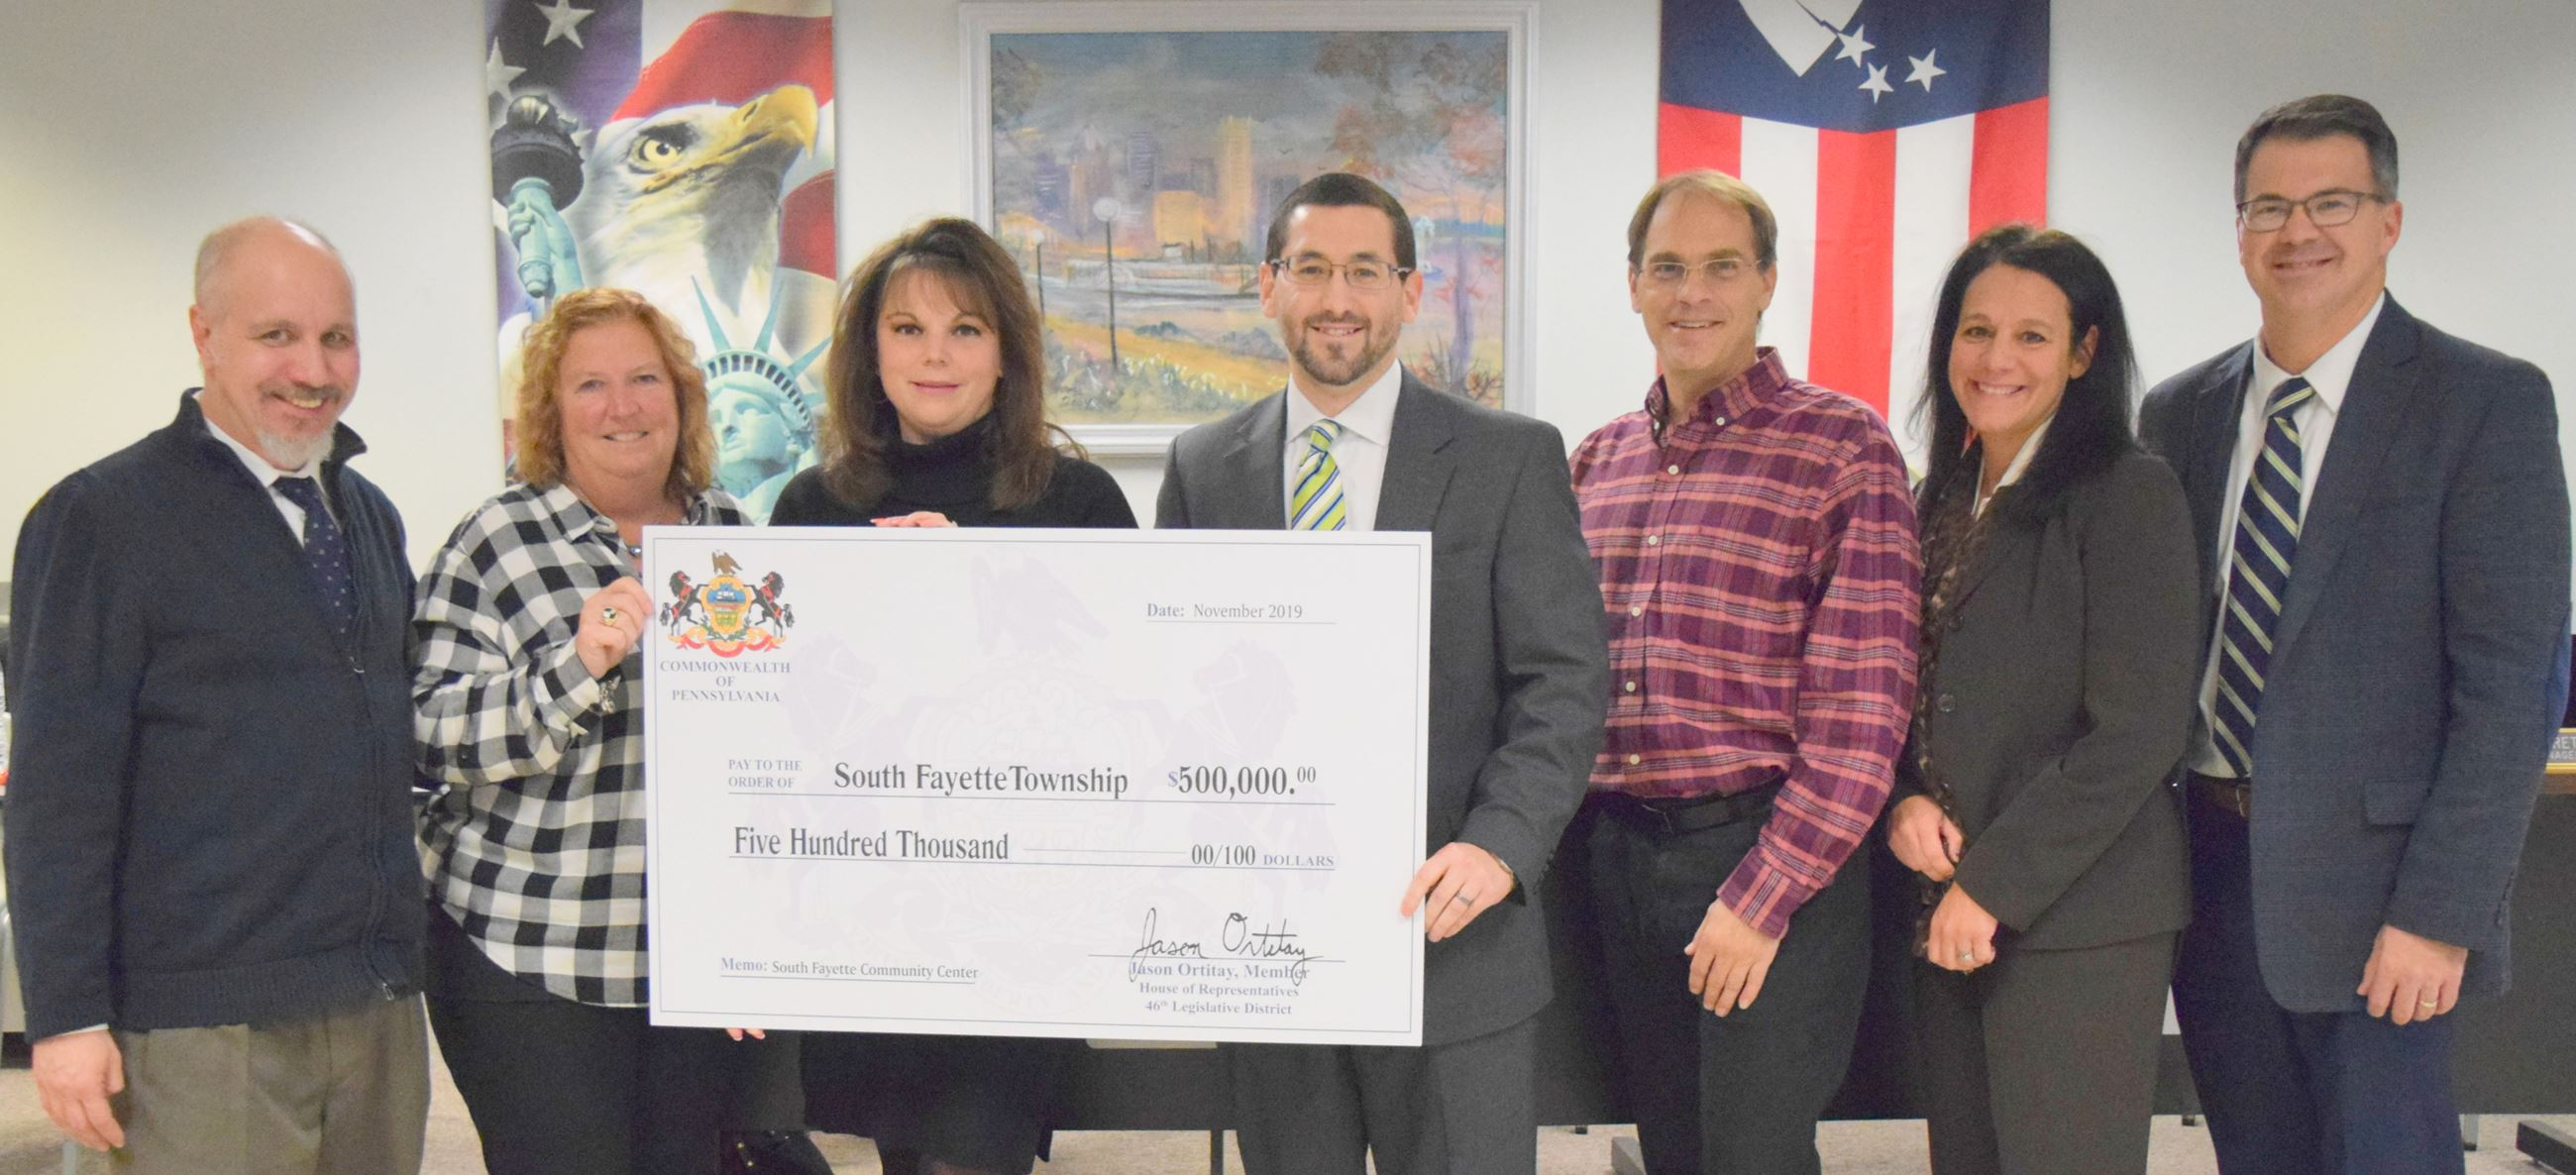 Township Commissioners pose with ceremonial check